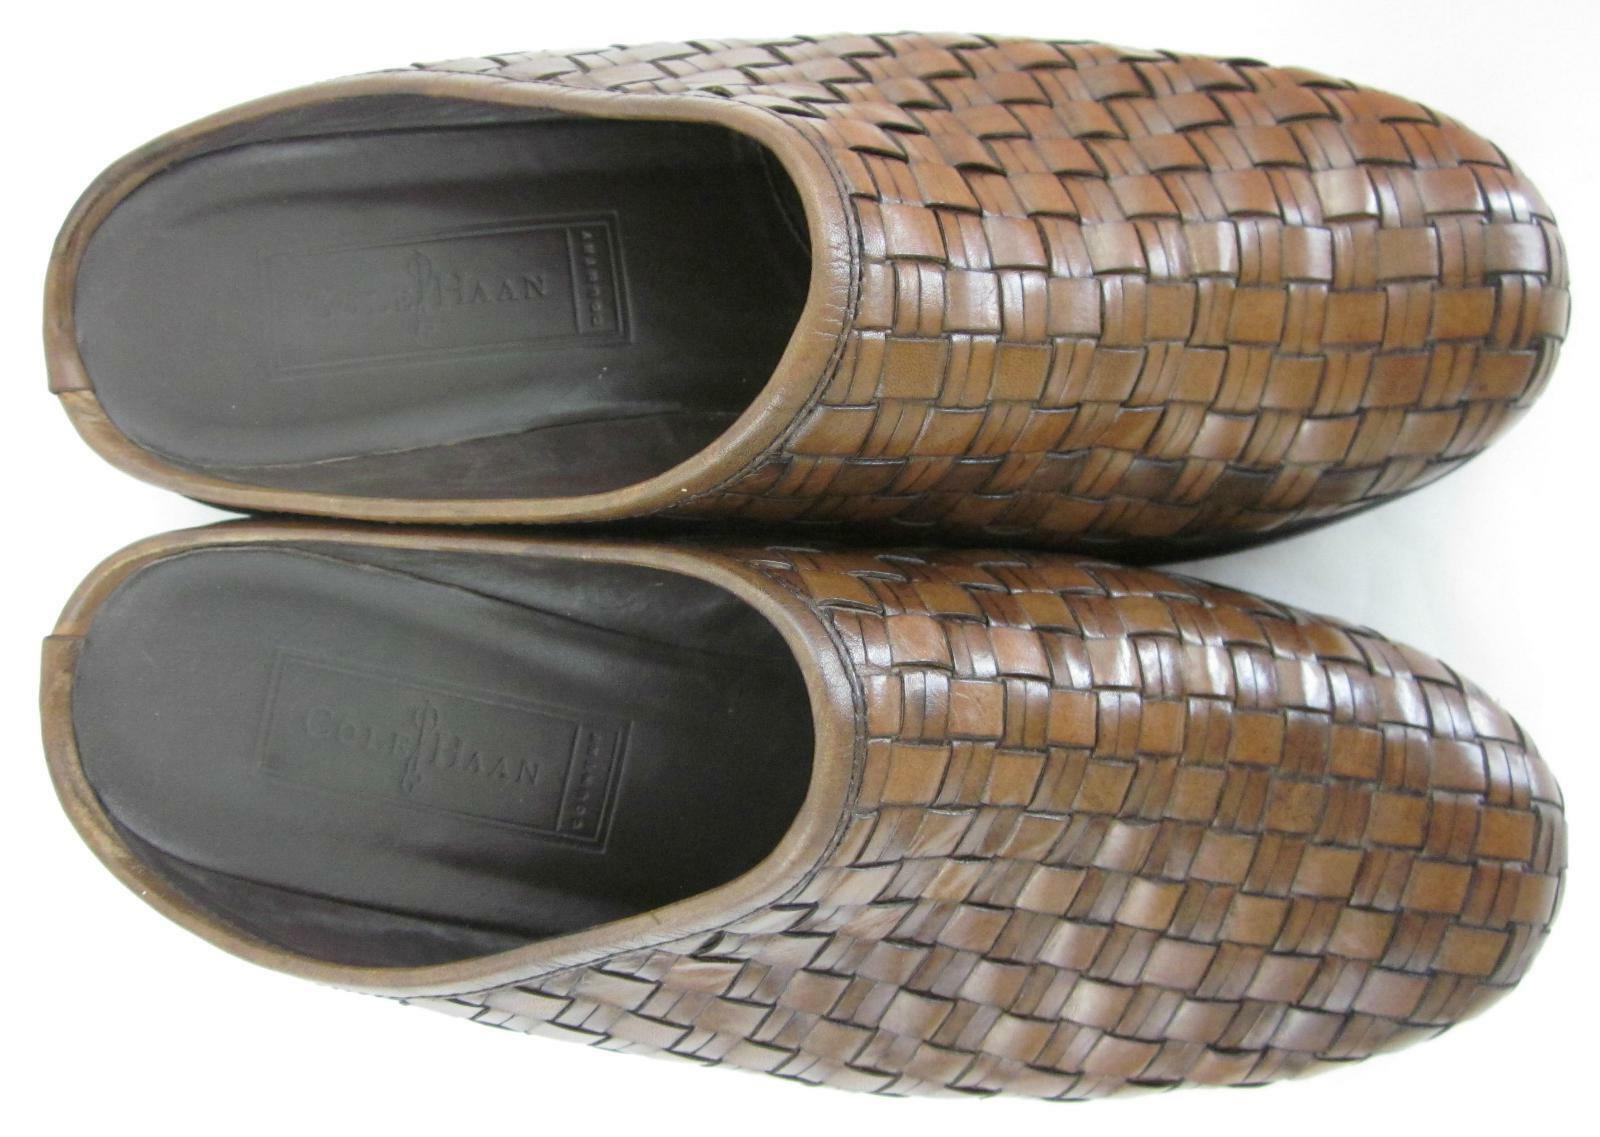 Cole Haan Haan Haan Country Mule Slides Basketweave braun Leather 7.5B Made In Brazil e76235